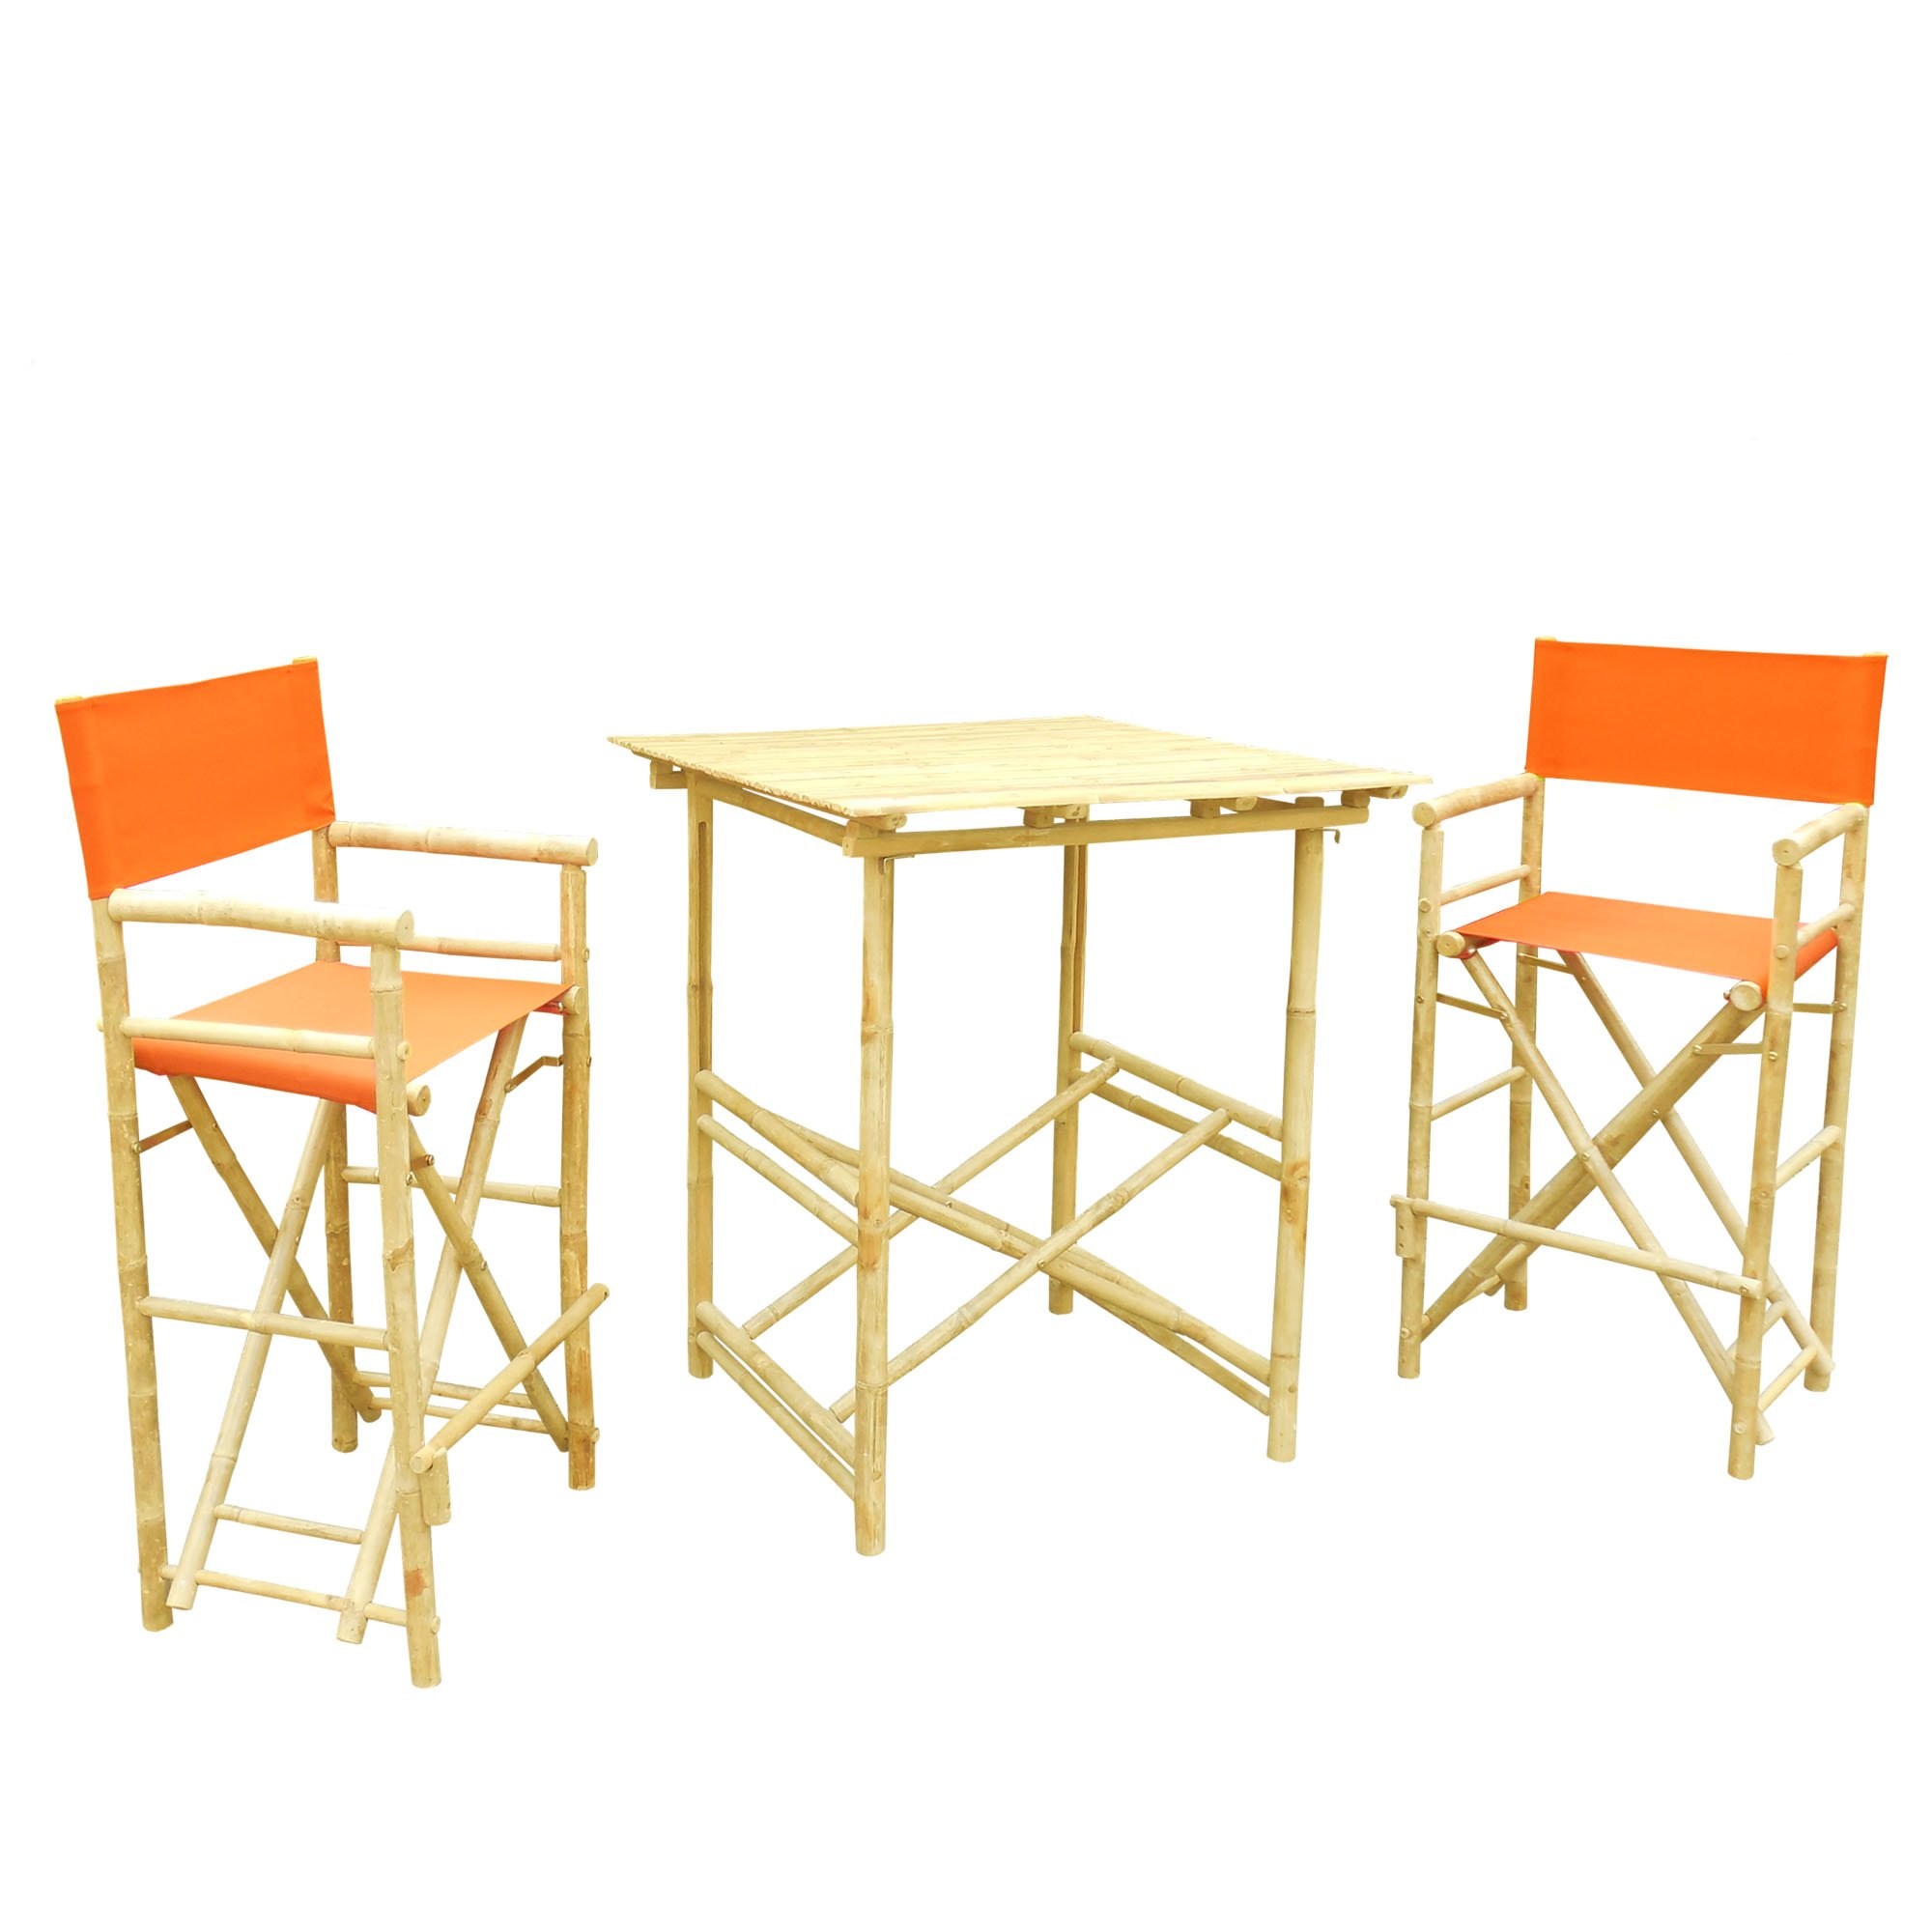 Zero Emission World Set of 1 High Table and 2 High Director Chairs, Pottery, Square